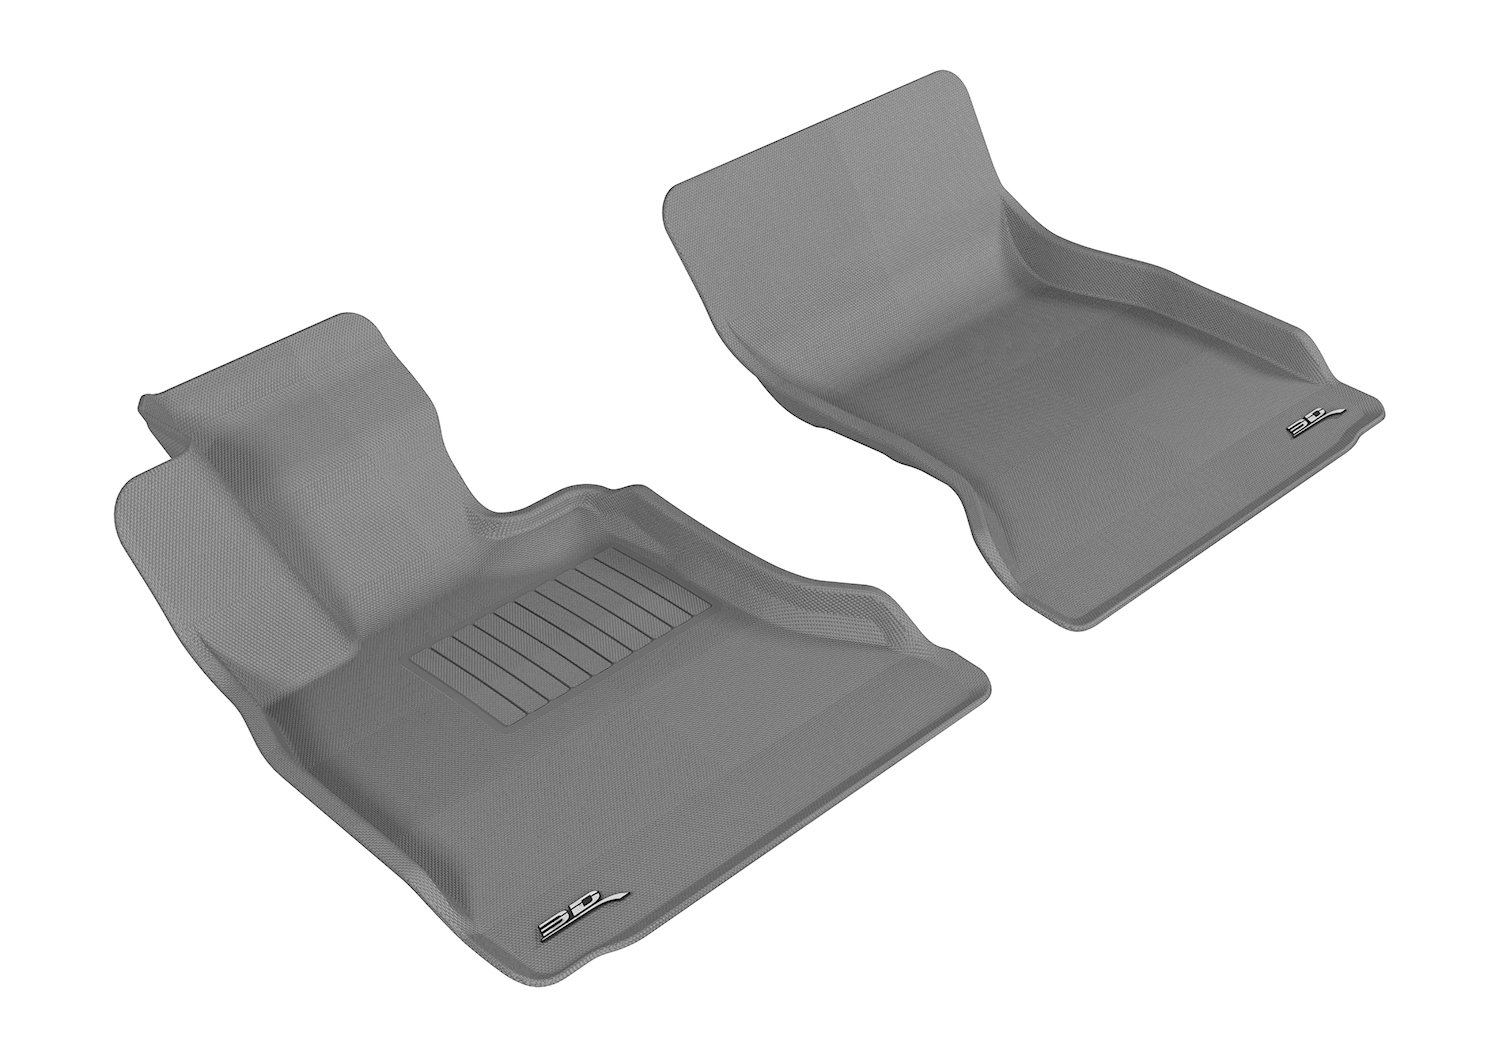 3D MAXpider Front Row Custom Fit All-Weather Floor Mat for Select BMW 5 Series (F10) Models - Kagu Rubber (Gray)